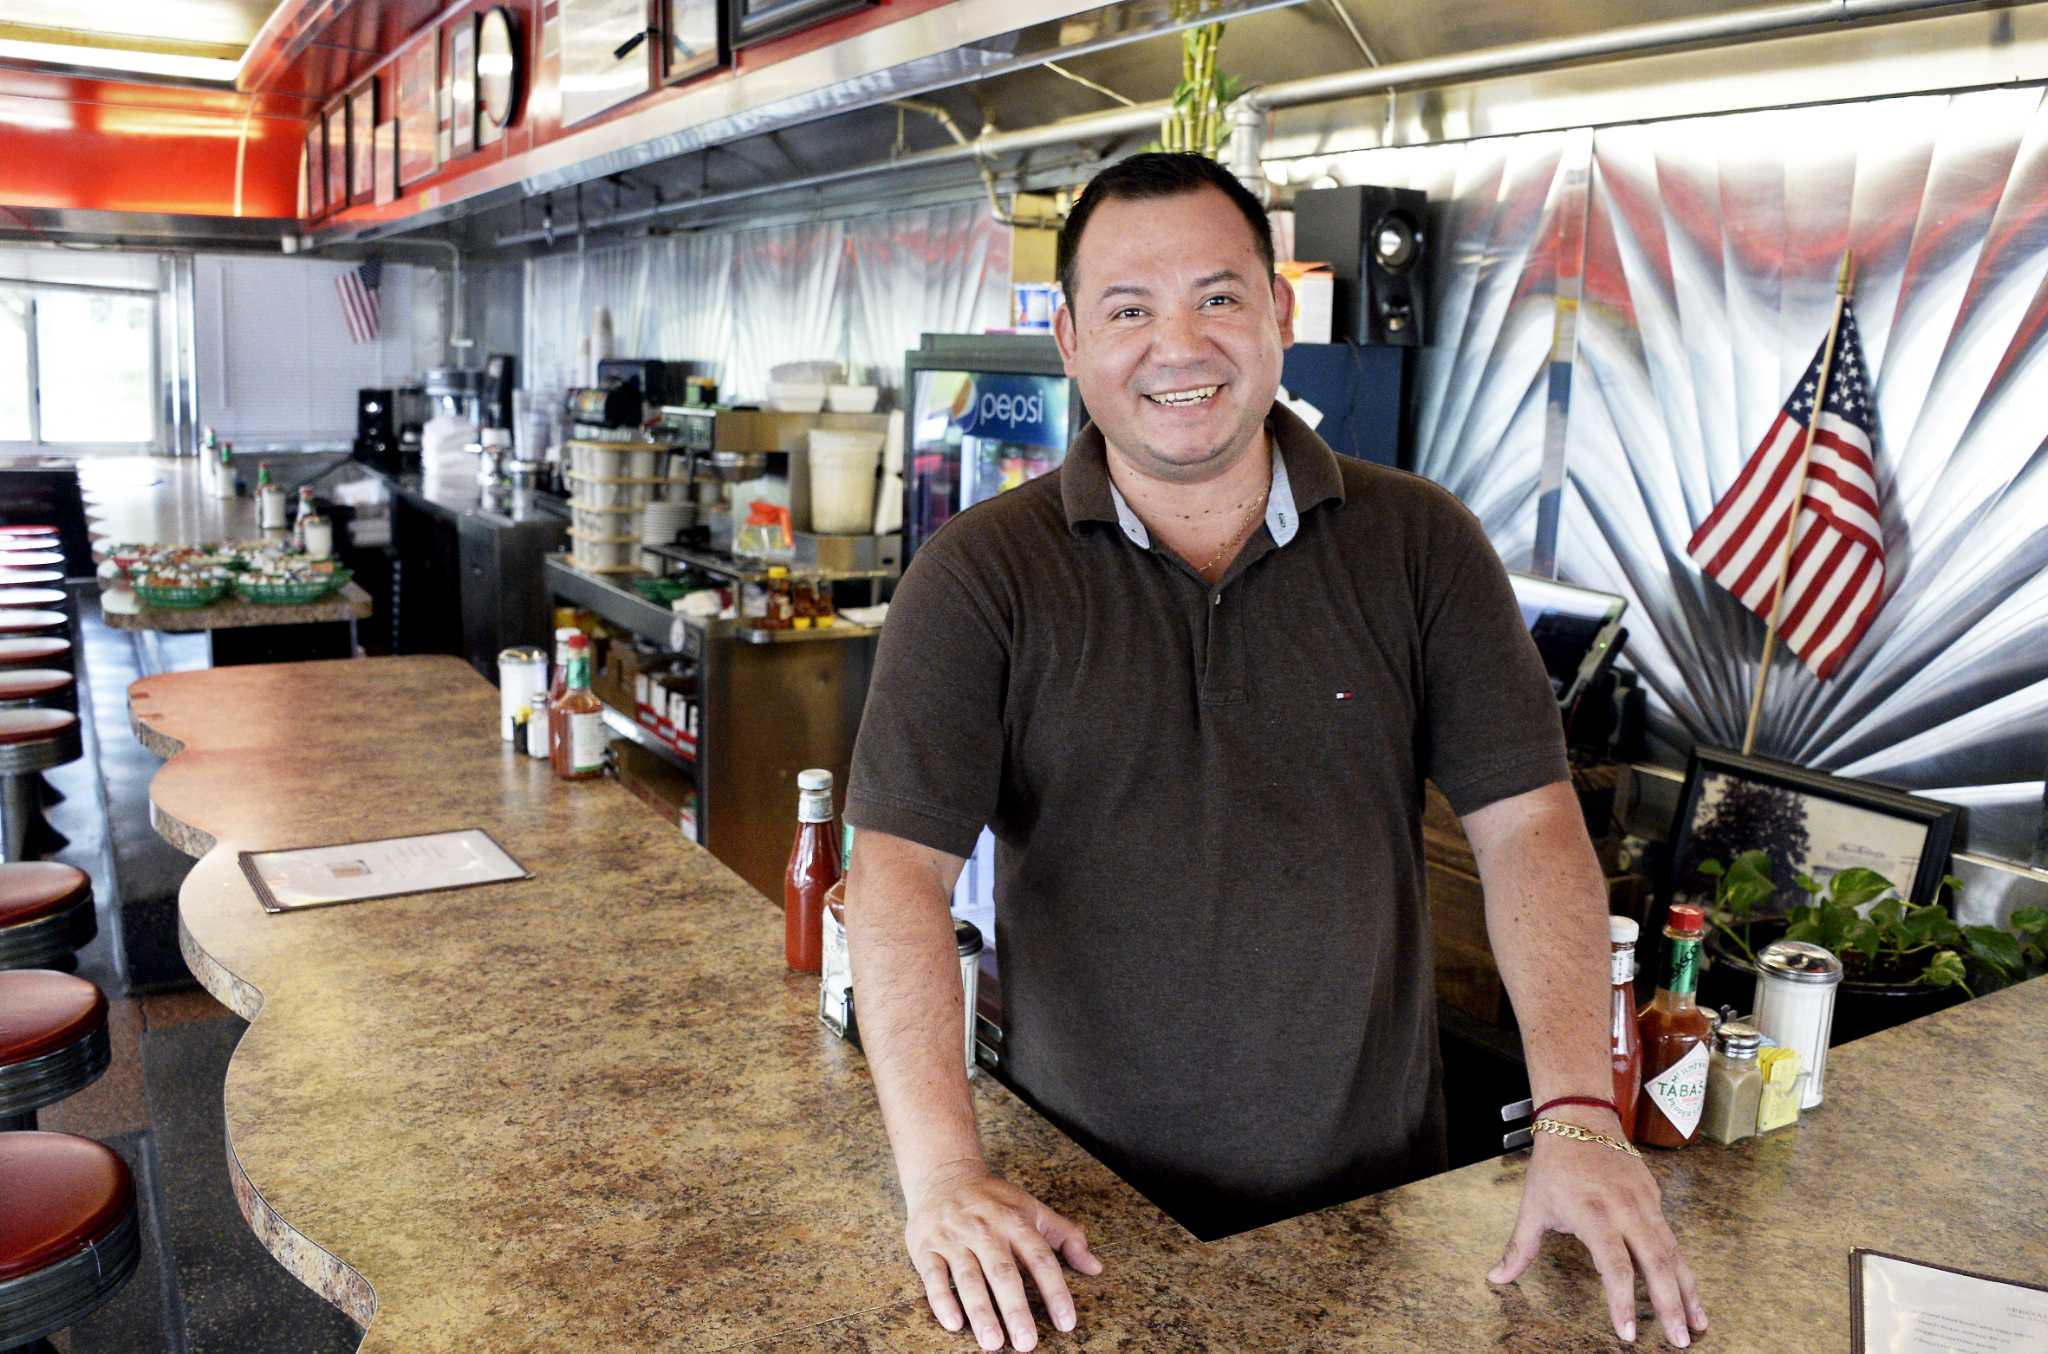 The El Salvadorian immigrant behind the classic American Jack's Diner - Times Union